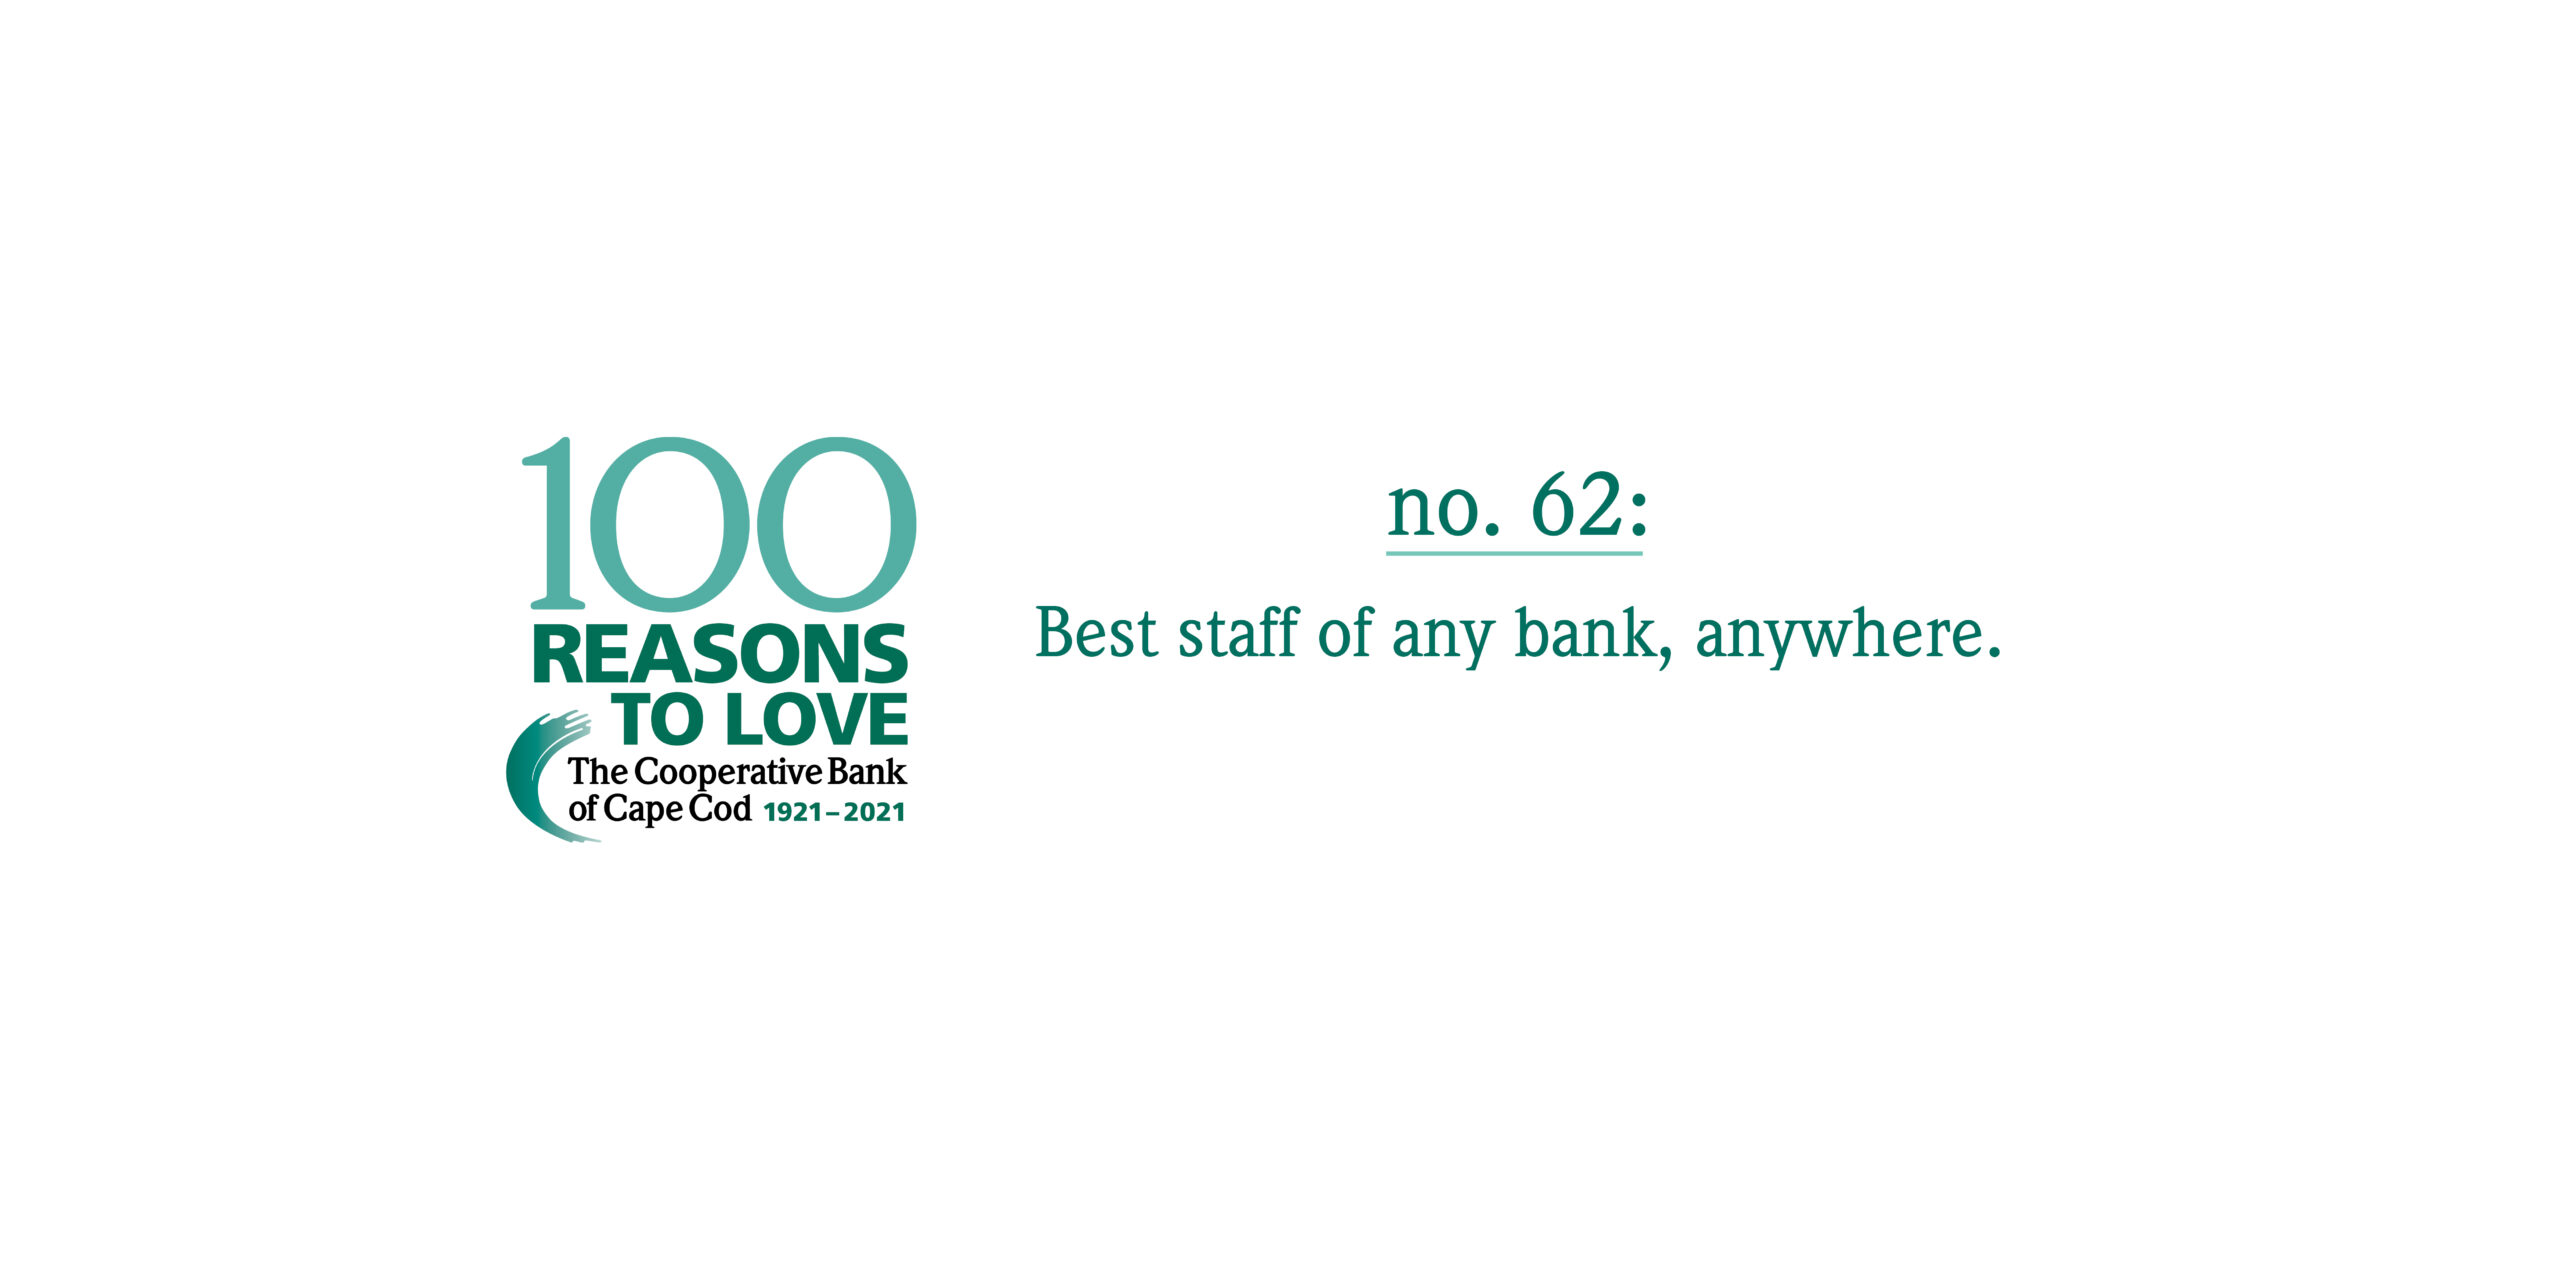 100 Reasons to Love The Coop - Reason #62: Best staff of any bank, anywhere.